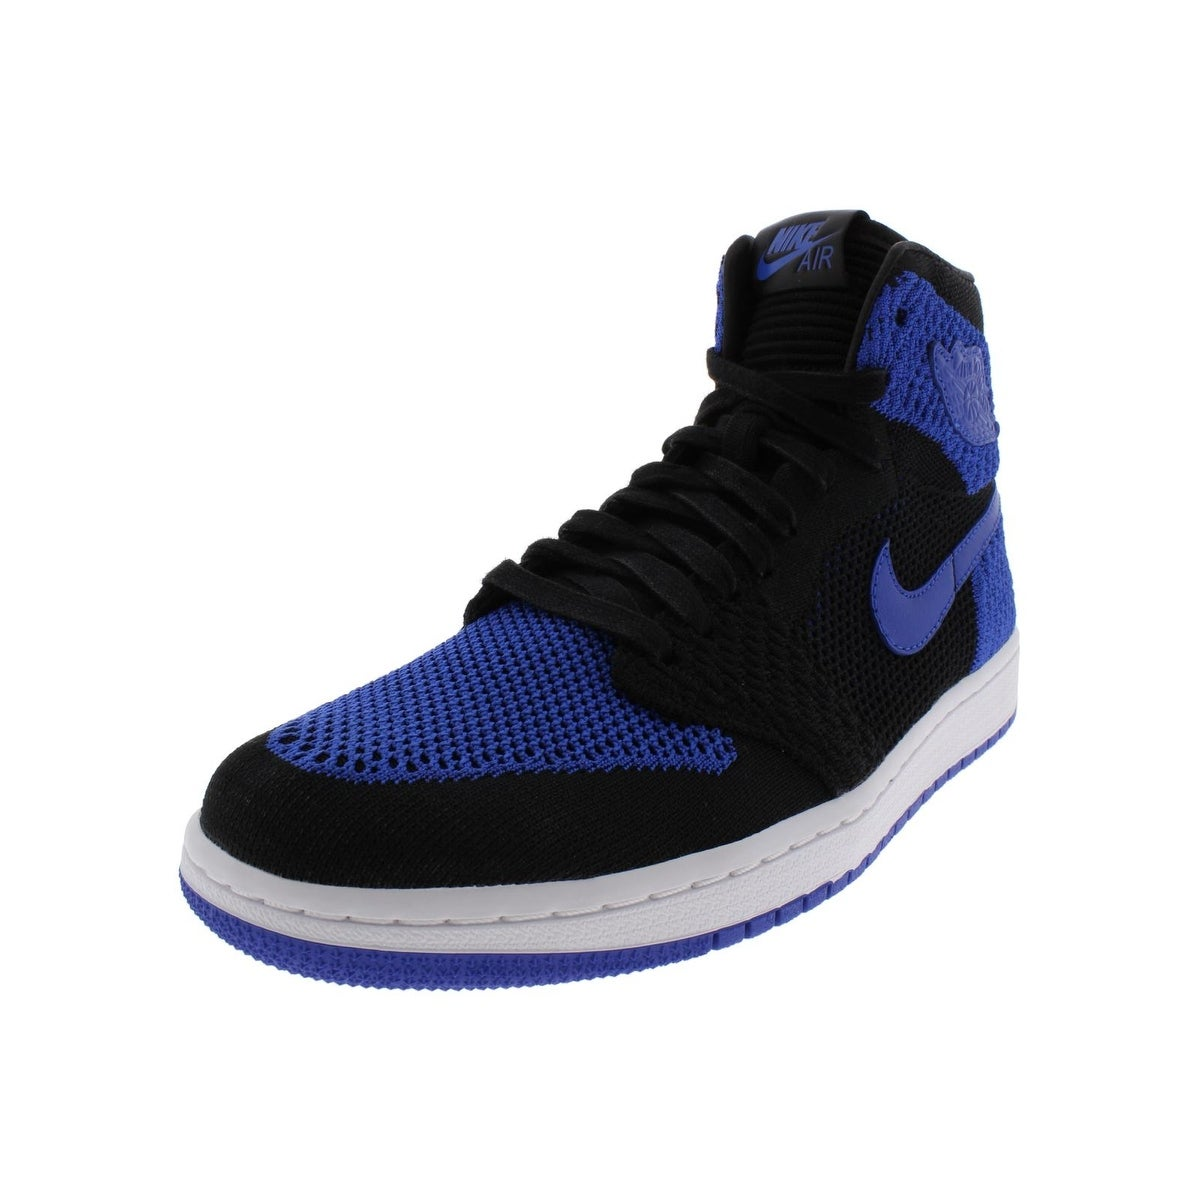 quality design 806b6 12bb4 New Products - Nike Shoes   Shop our Best Clothing   Shoes Deals Online at  Overstock